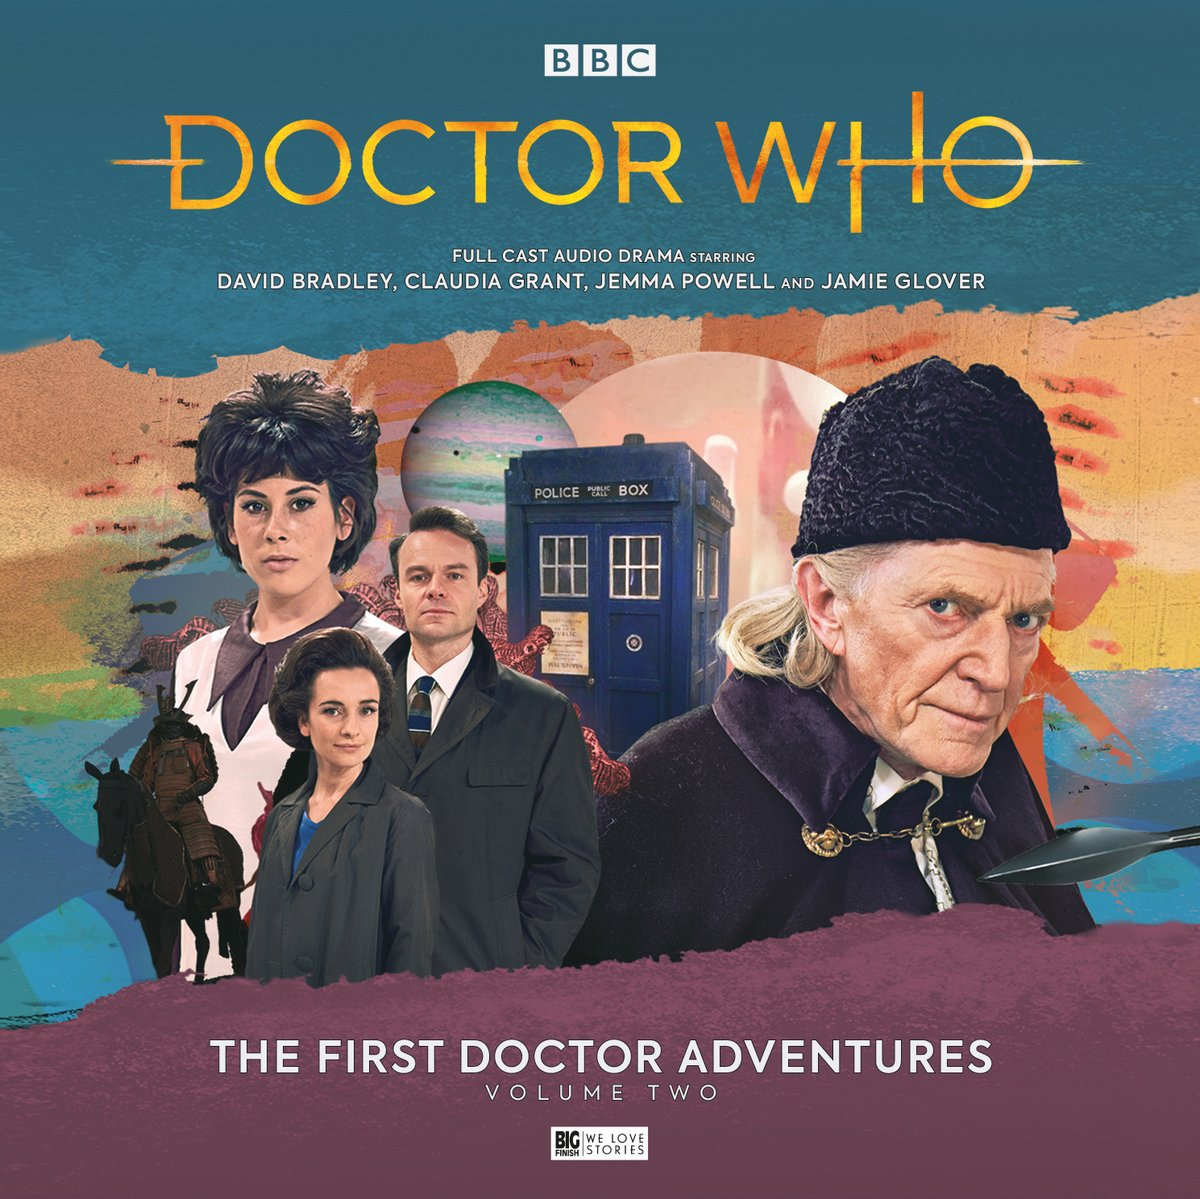 Big Finish: New First Doctor Adventures coming soon - The